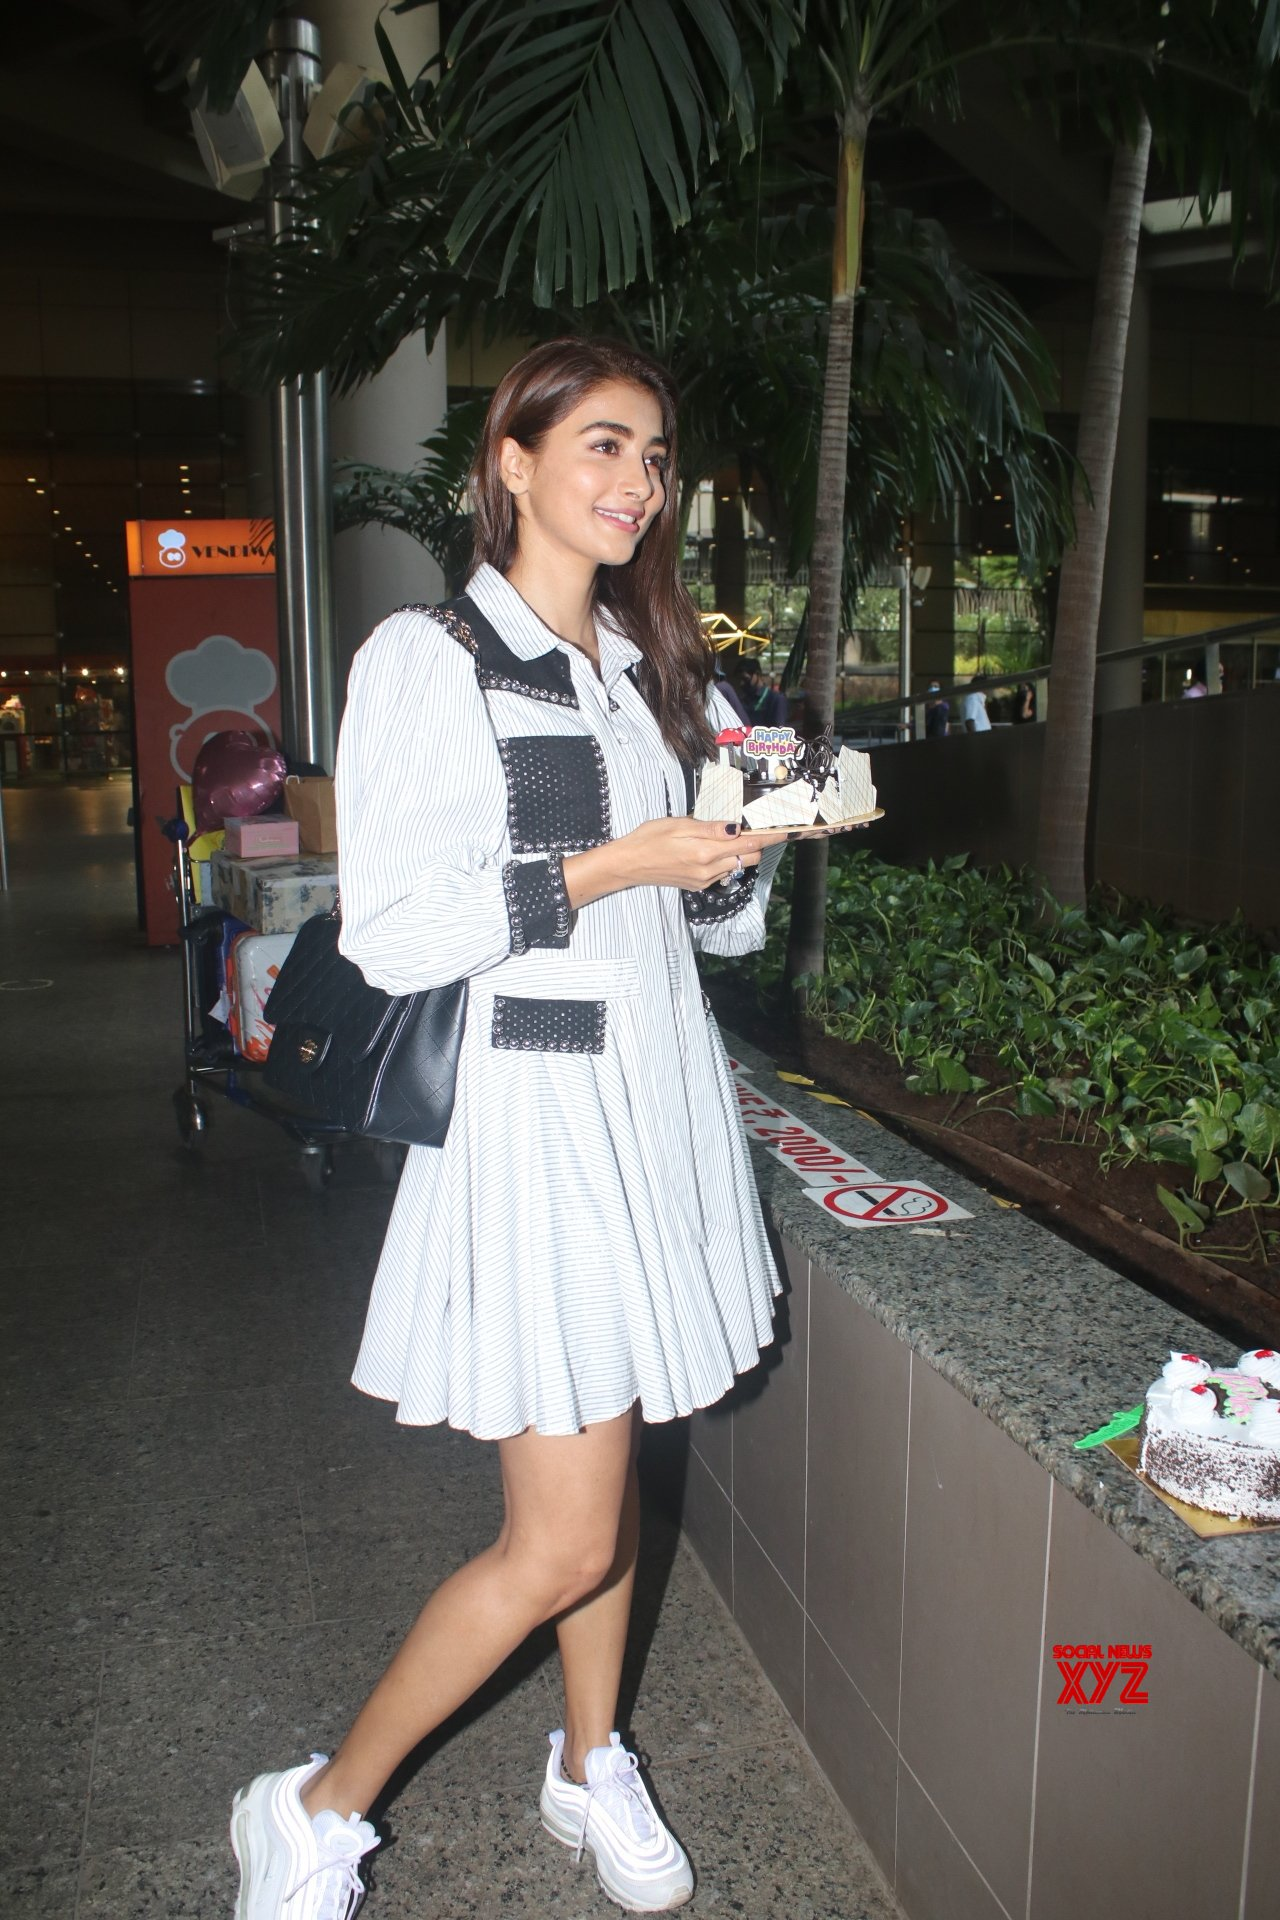 Actress Pooja Hegde Spotted At Airport Arrival And Cutting Birthday Cake With Media - Gallery